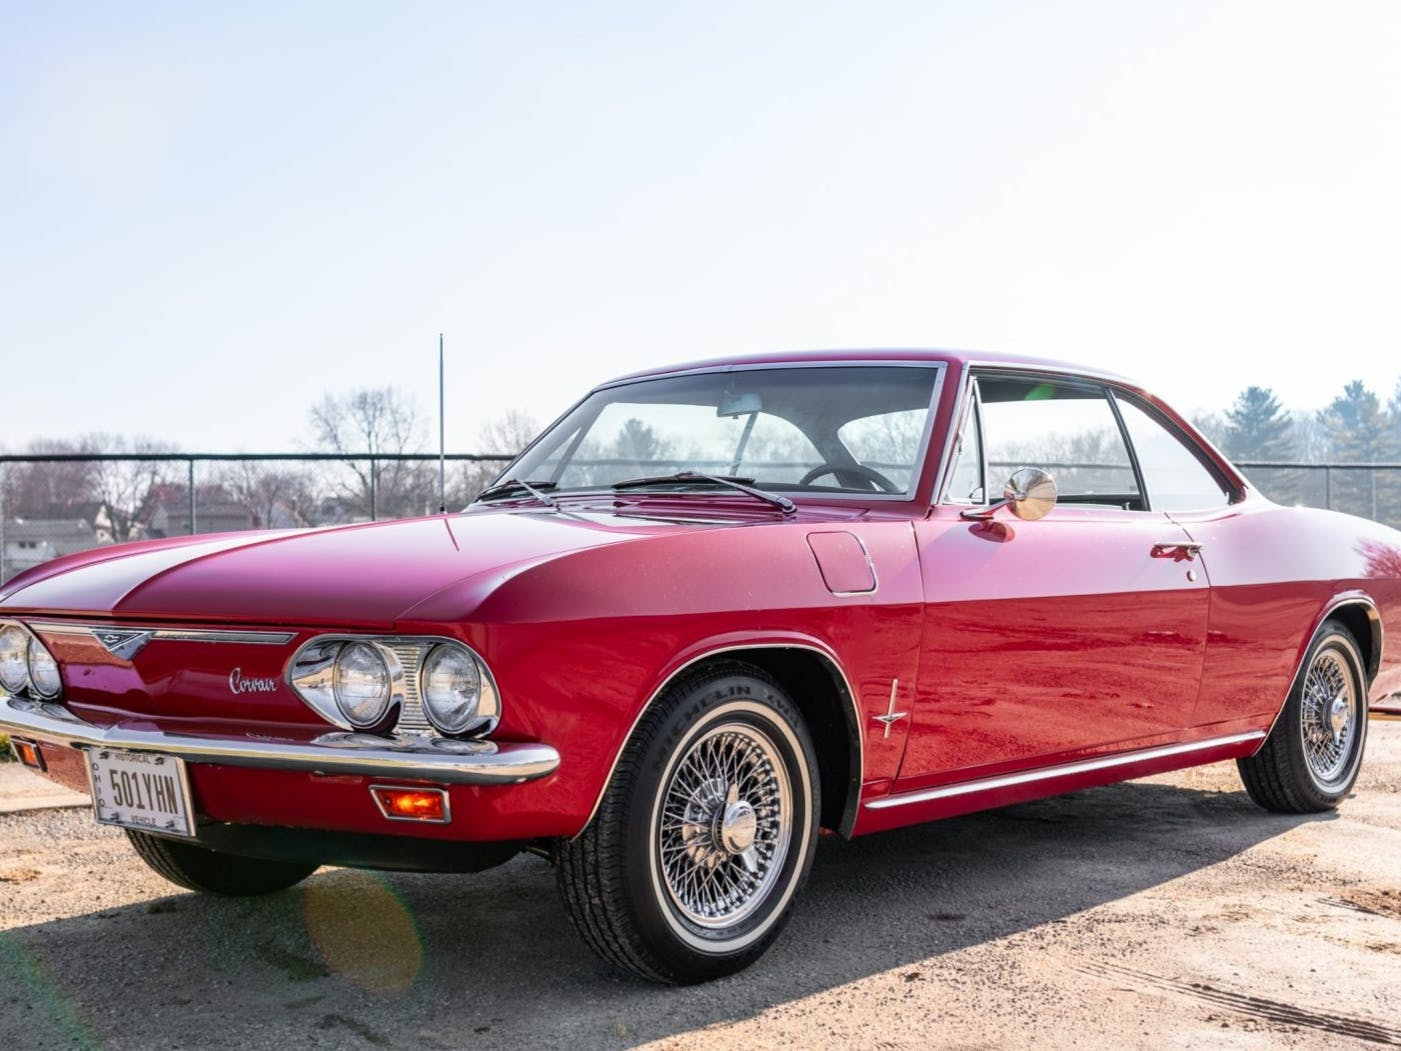 1967 Chevrolet Corvair Monza Coupe